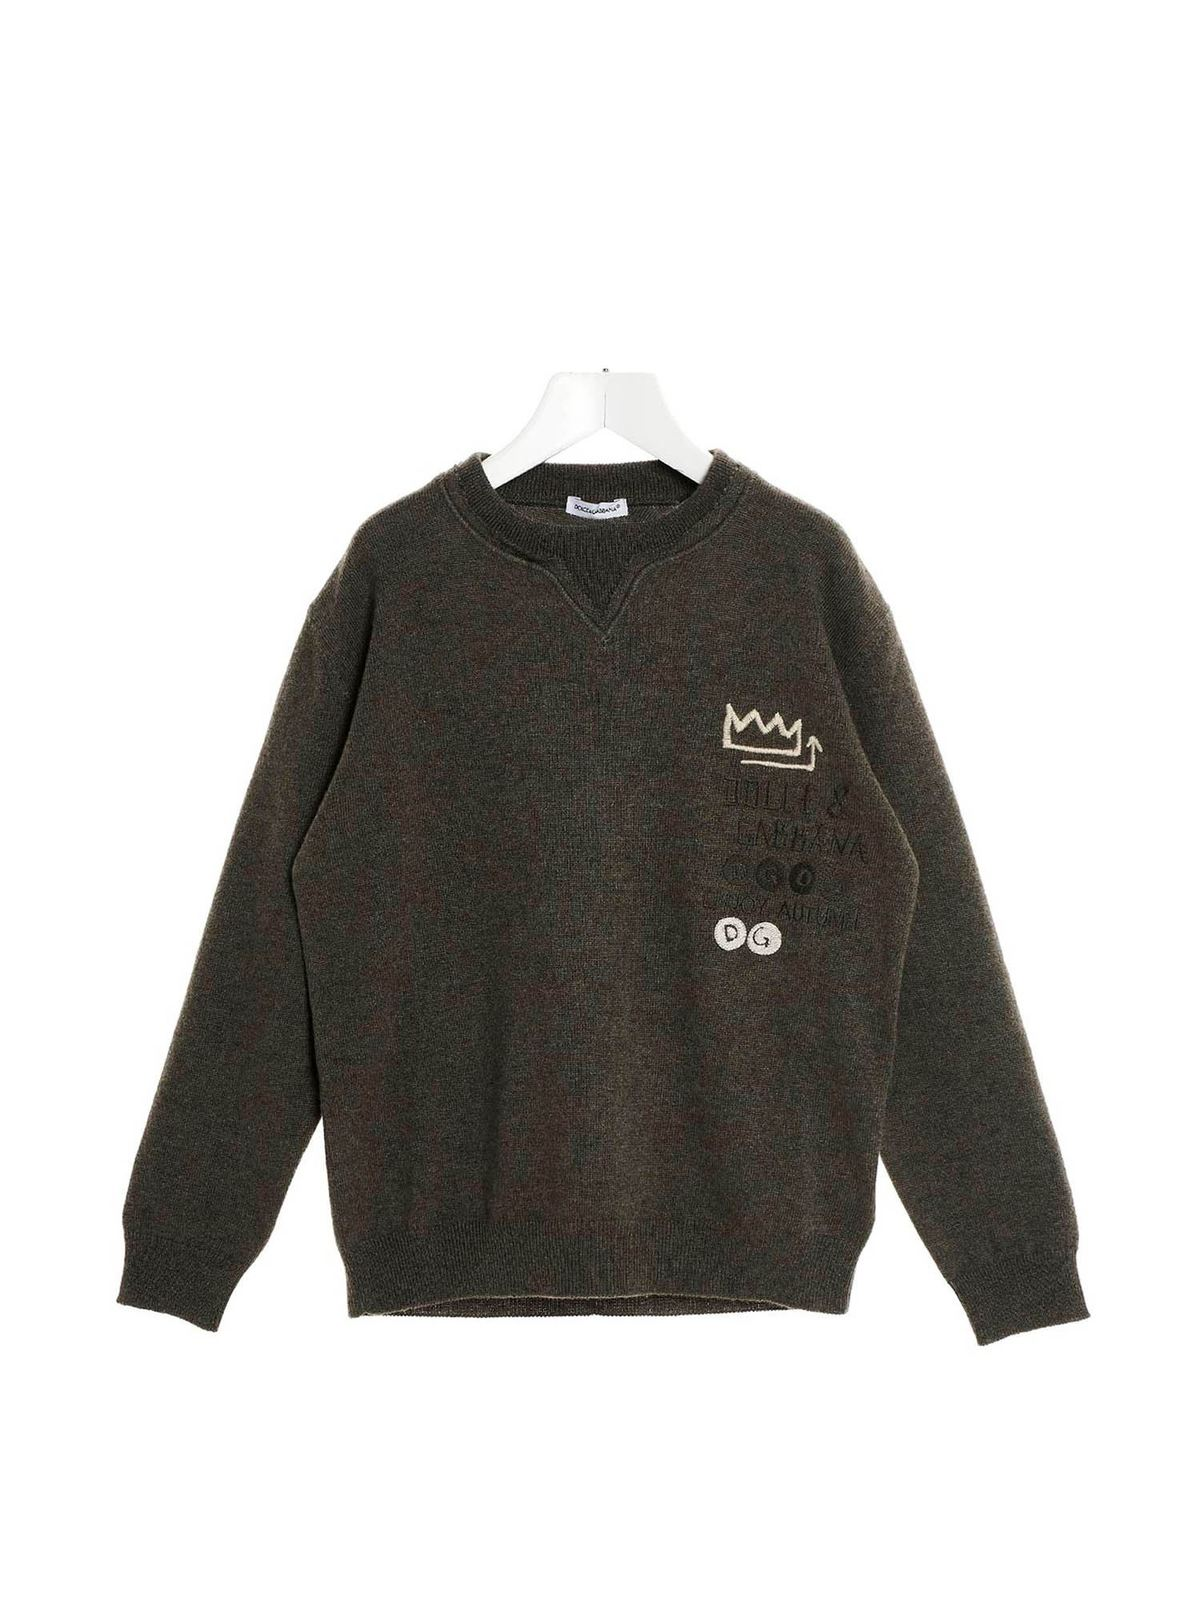 Dolce & Gabbana Jr Clothing EMBROIDERED LOGO PULLOVER IN GREY